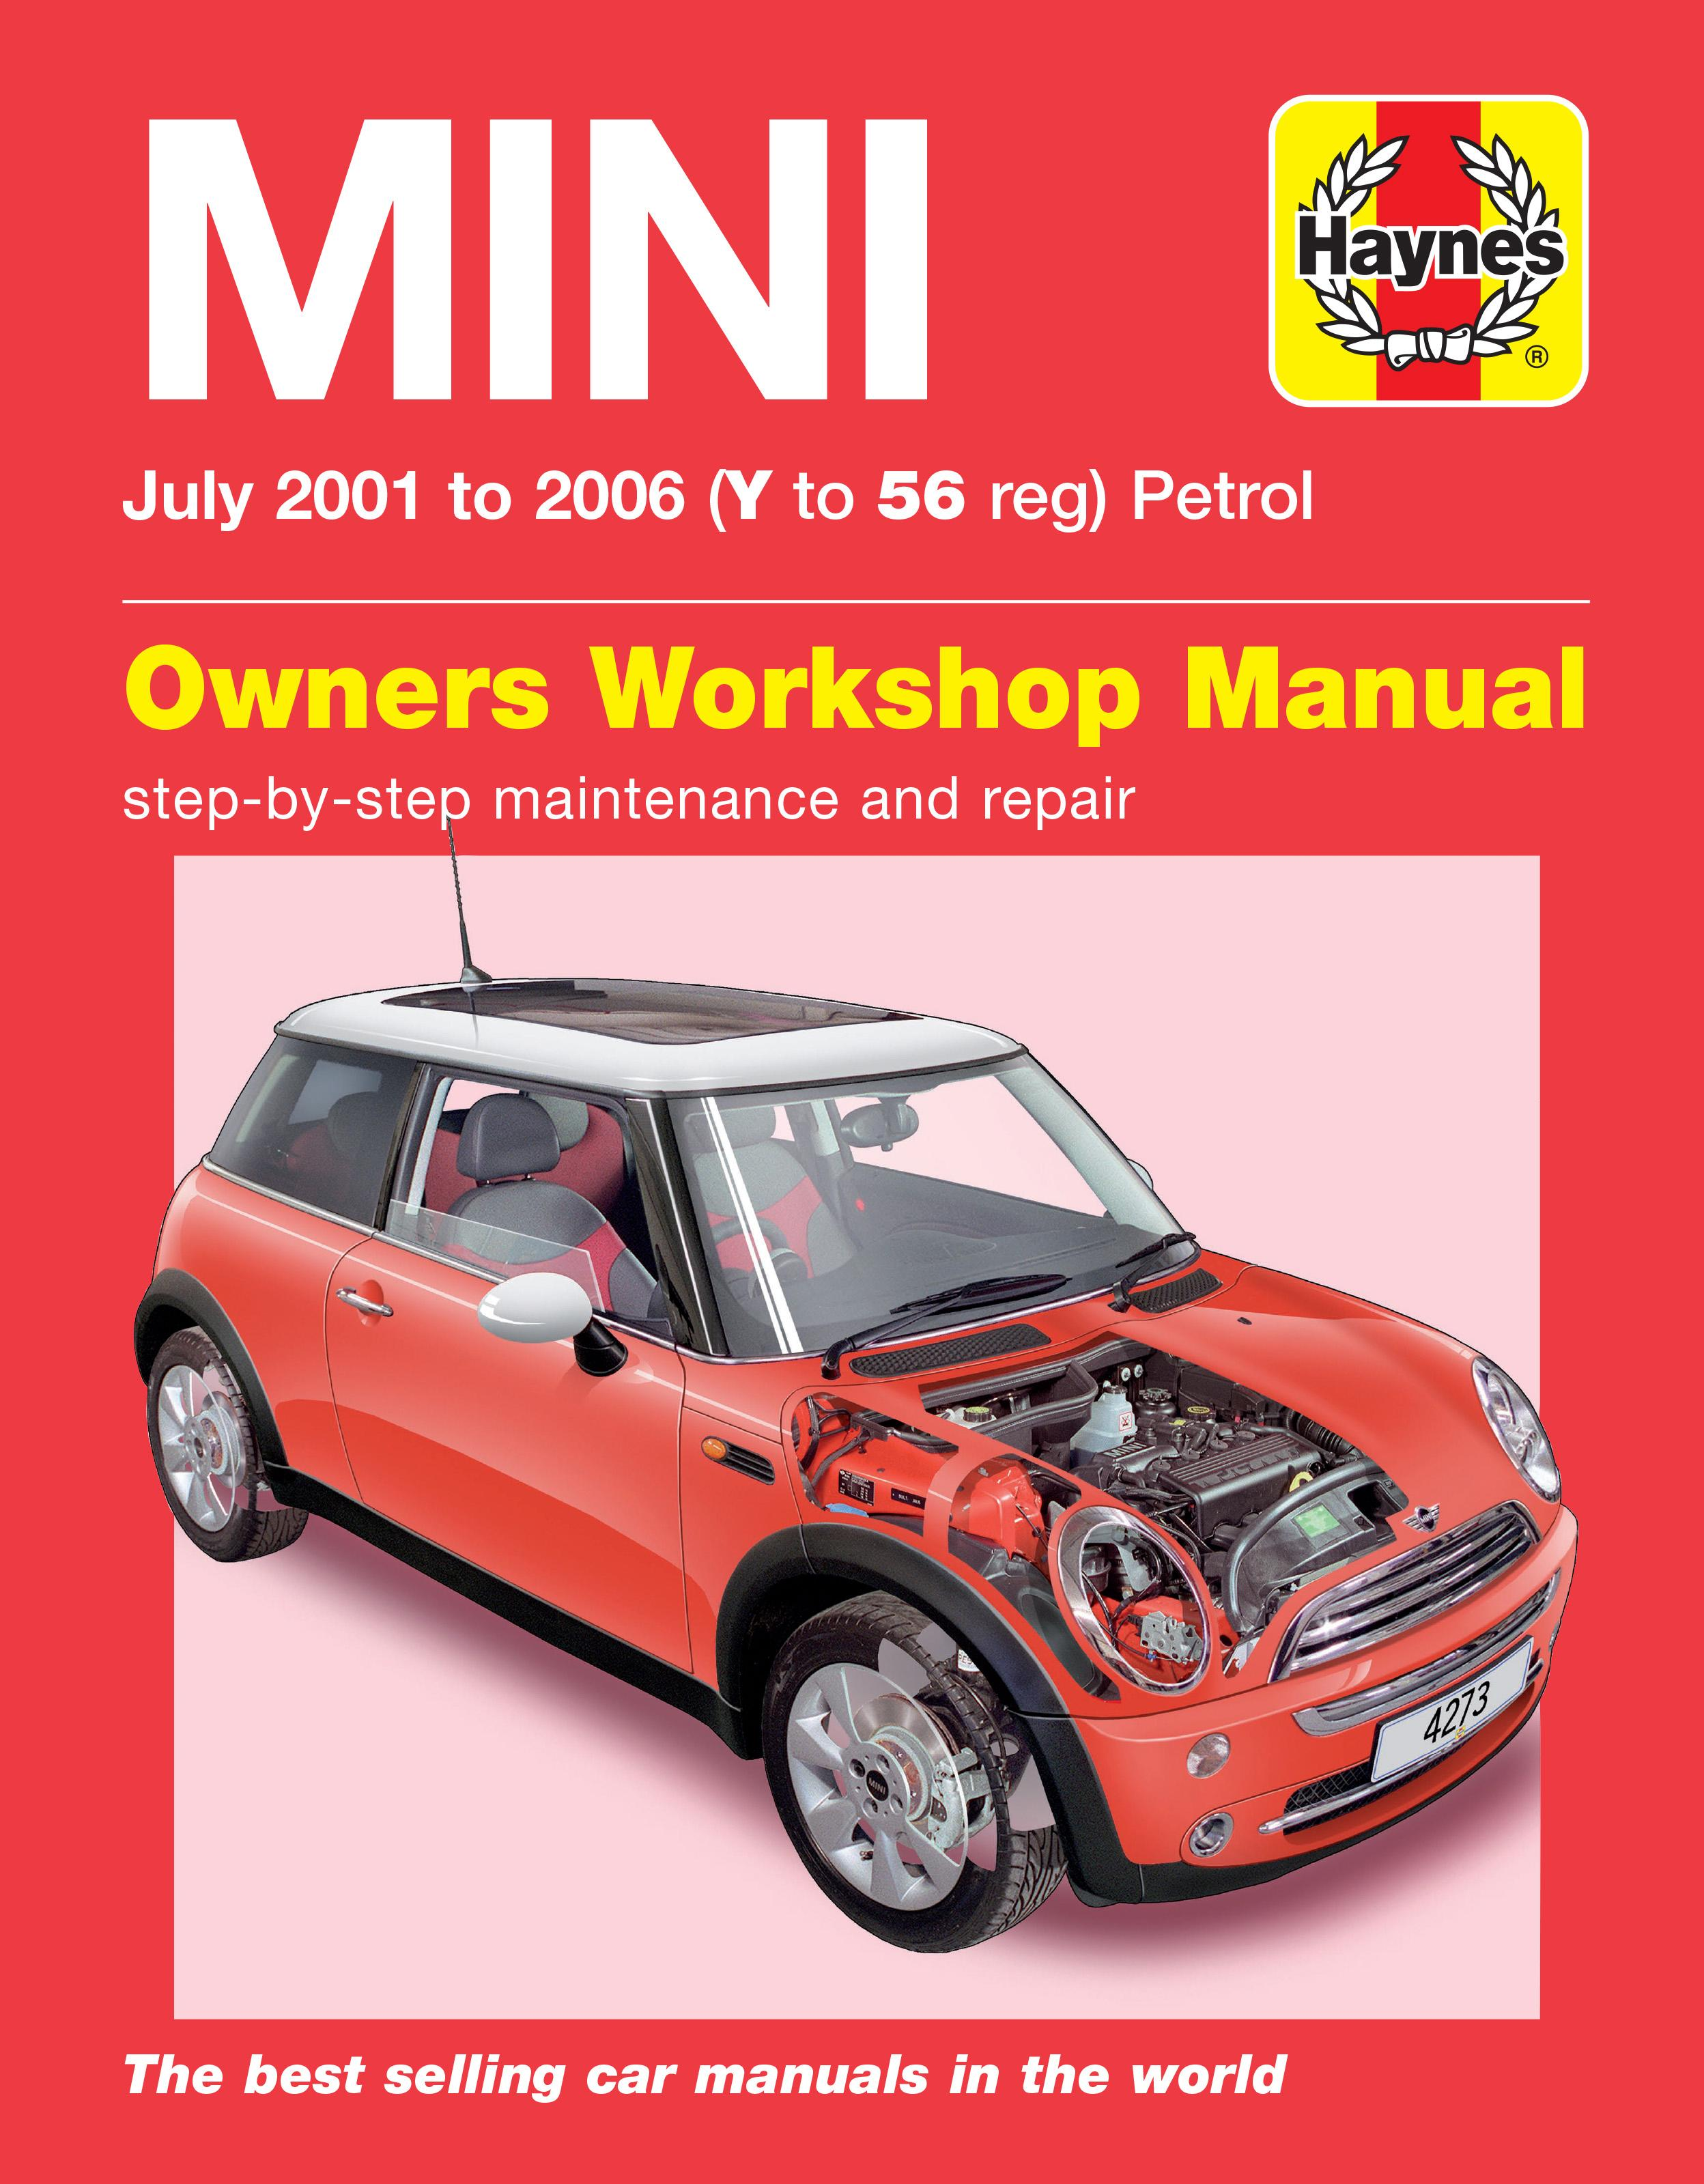 haynes bmw mini 01 05 manual rh halfords com Manual De Reparacion Automotriz Gratis Trabajos Manuales En Madera